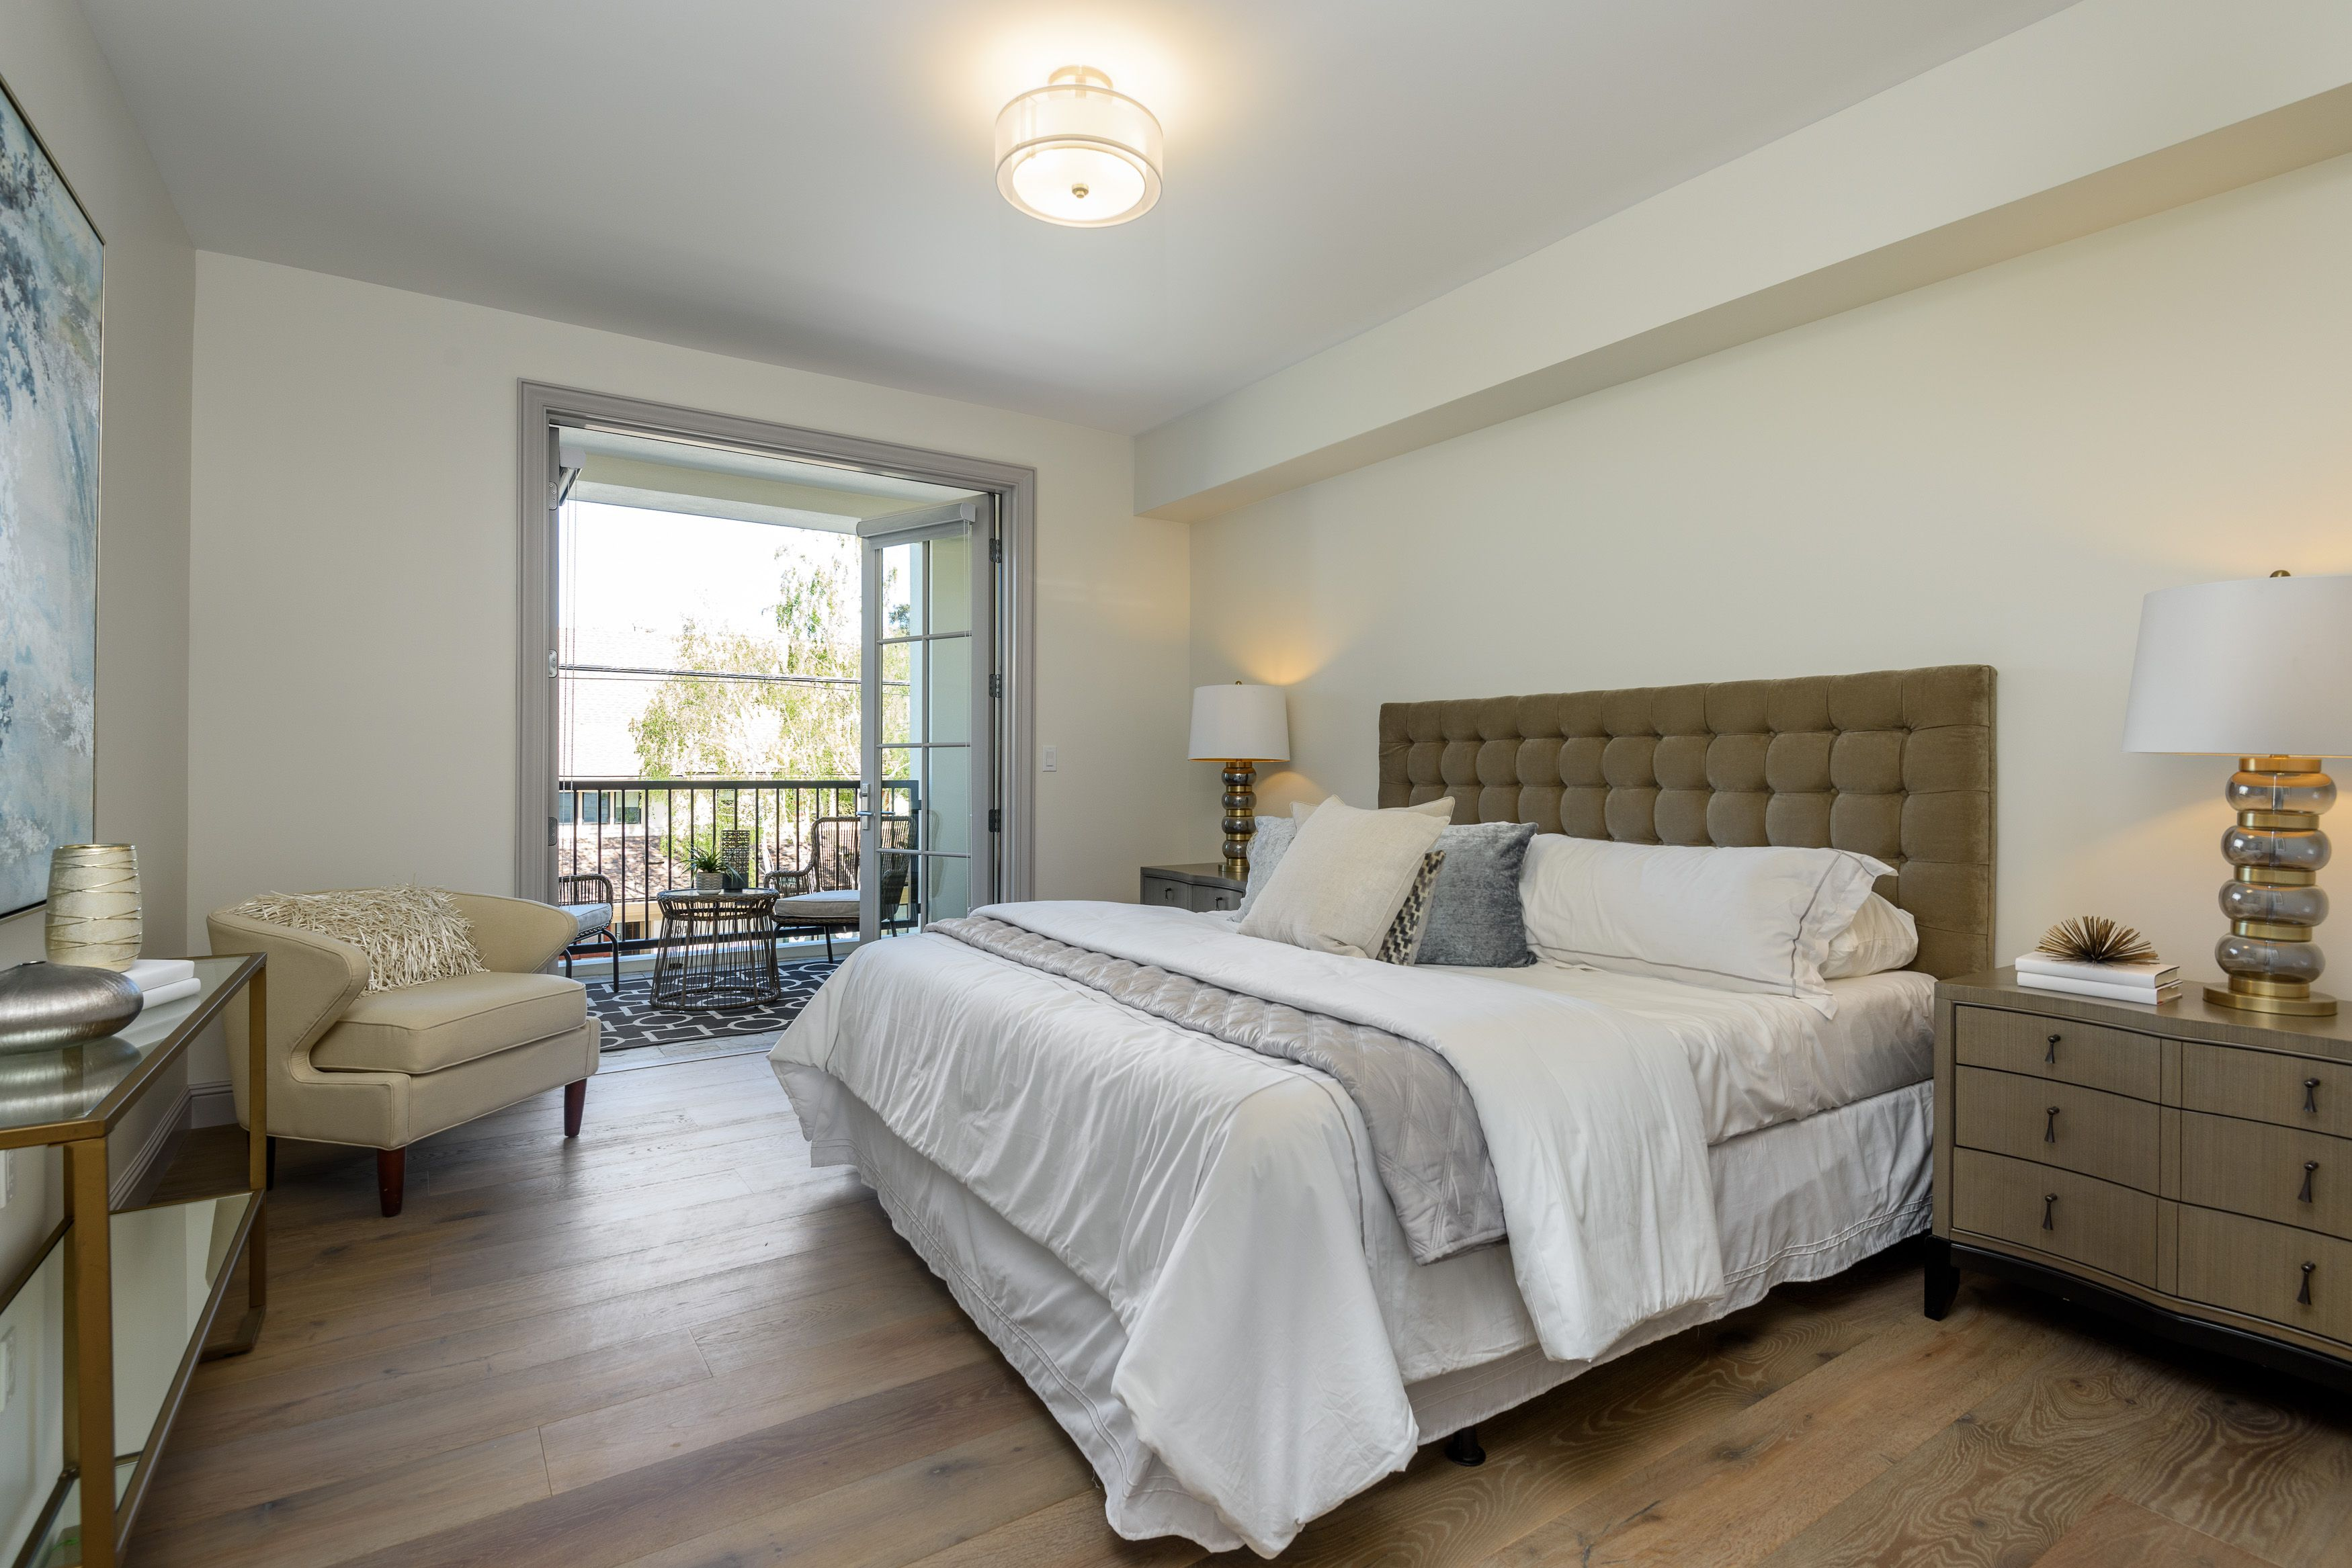 Bedroom featured in the Unit 2 By Landmark Development Corp in San Francisco, CA